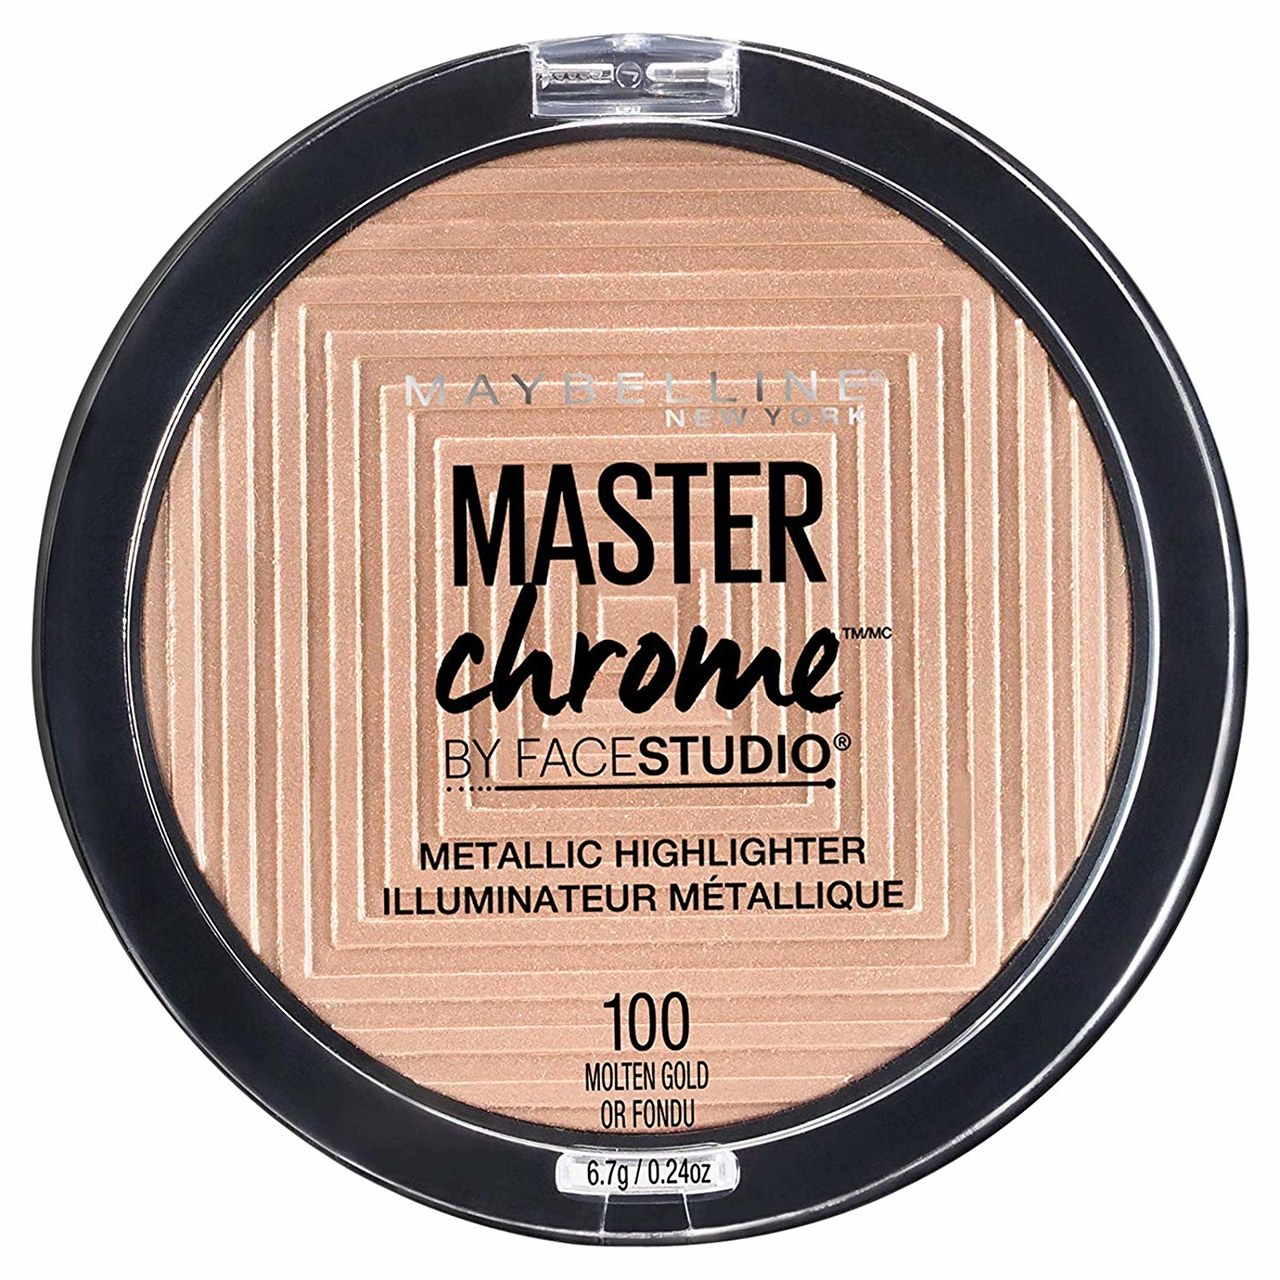 Maybelline FaceStudio Master Chrome Metallic Highlighter in Molten GoldThis image may contain Light